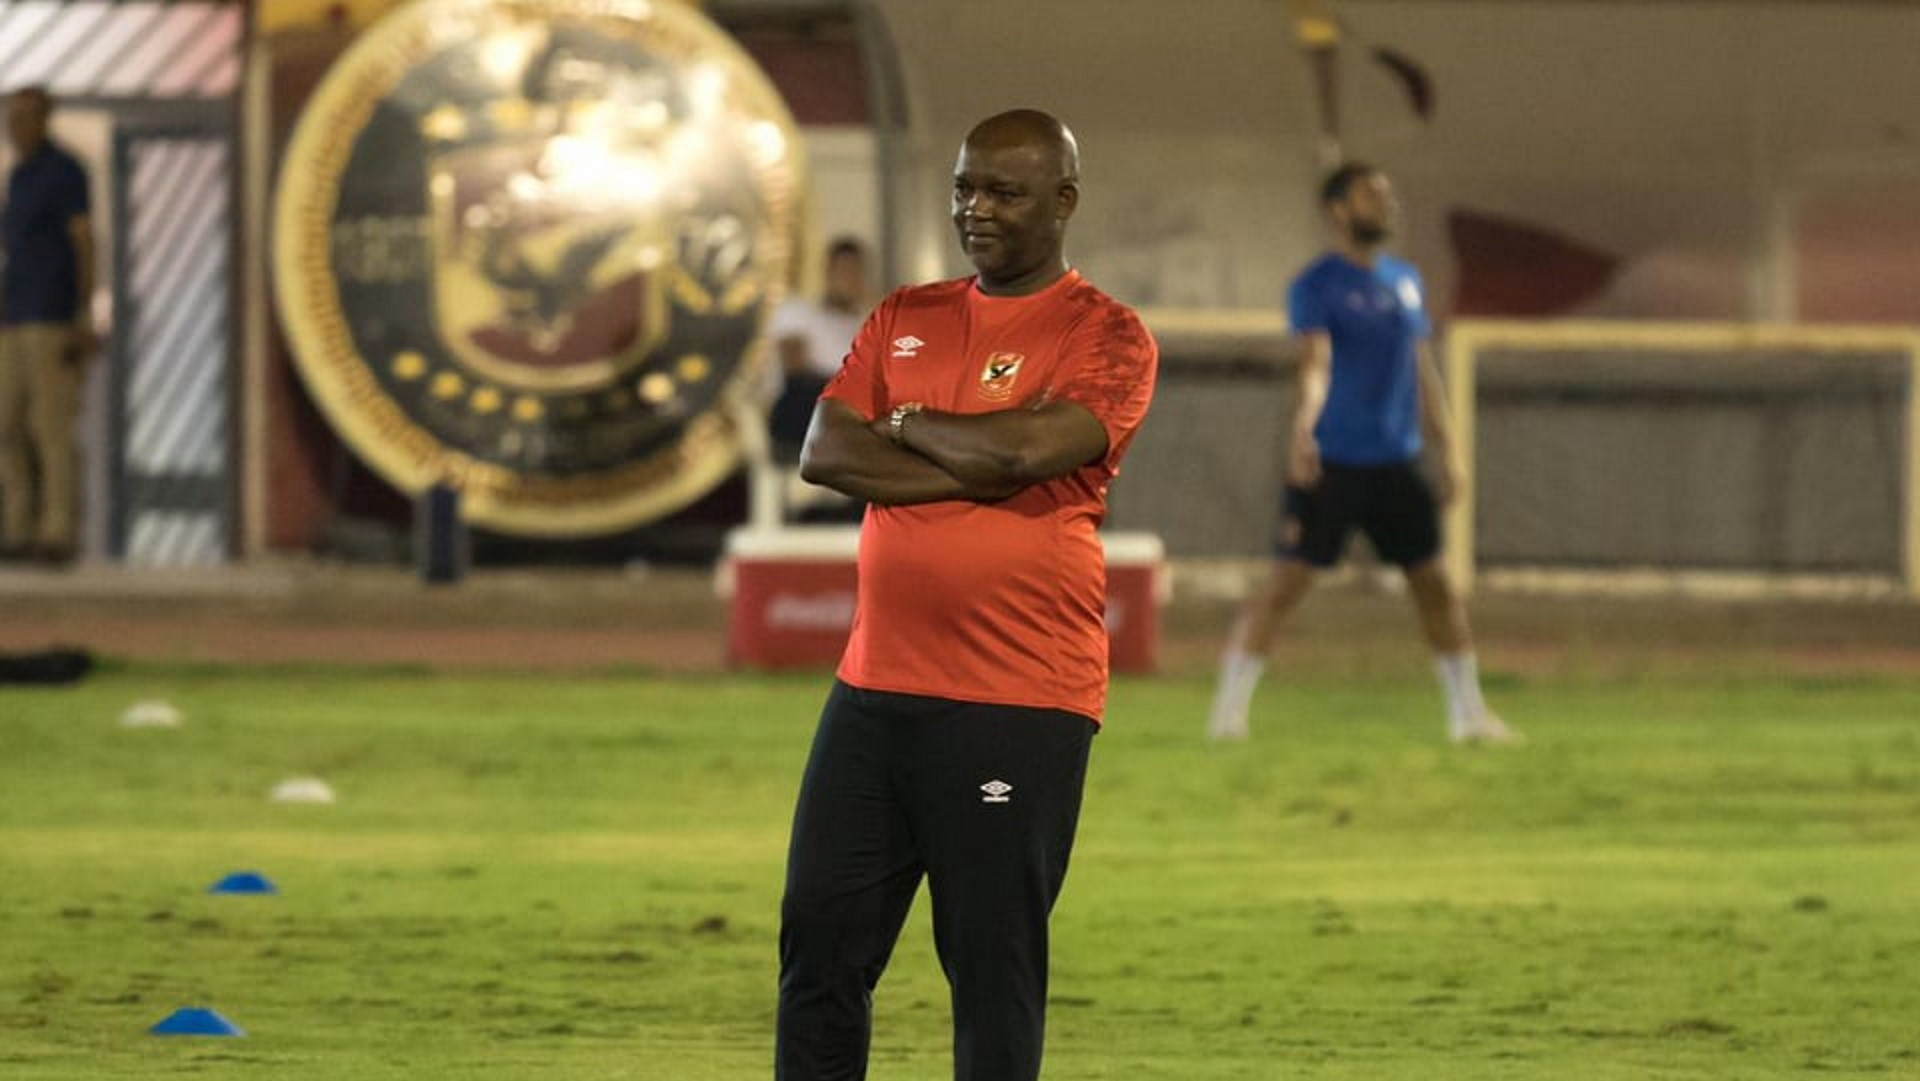 Ex-Mamelodi Sundowns coach Mosimane keen to win in 'different cultures' like Guardiola